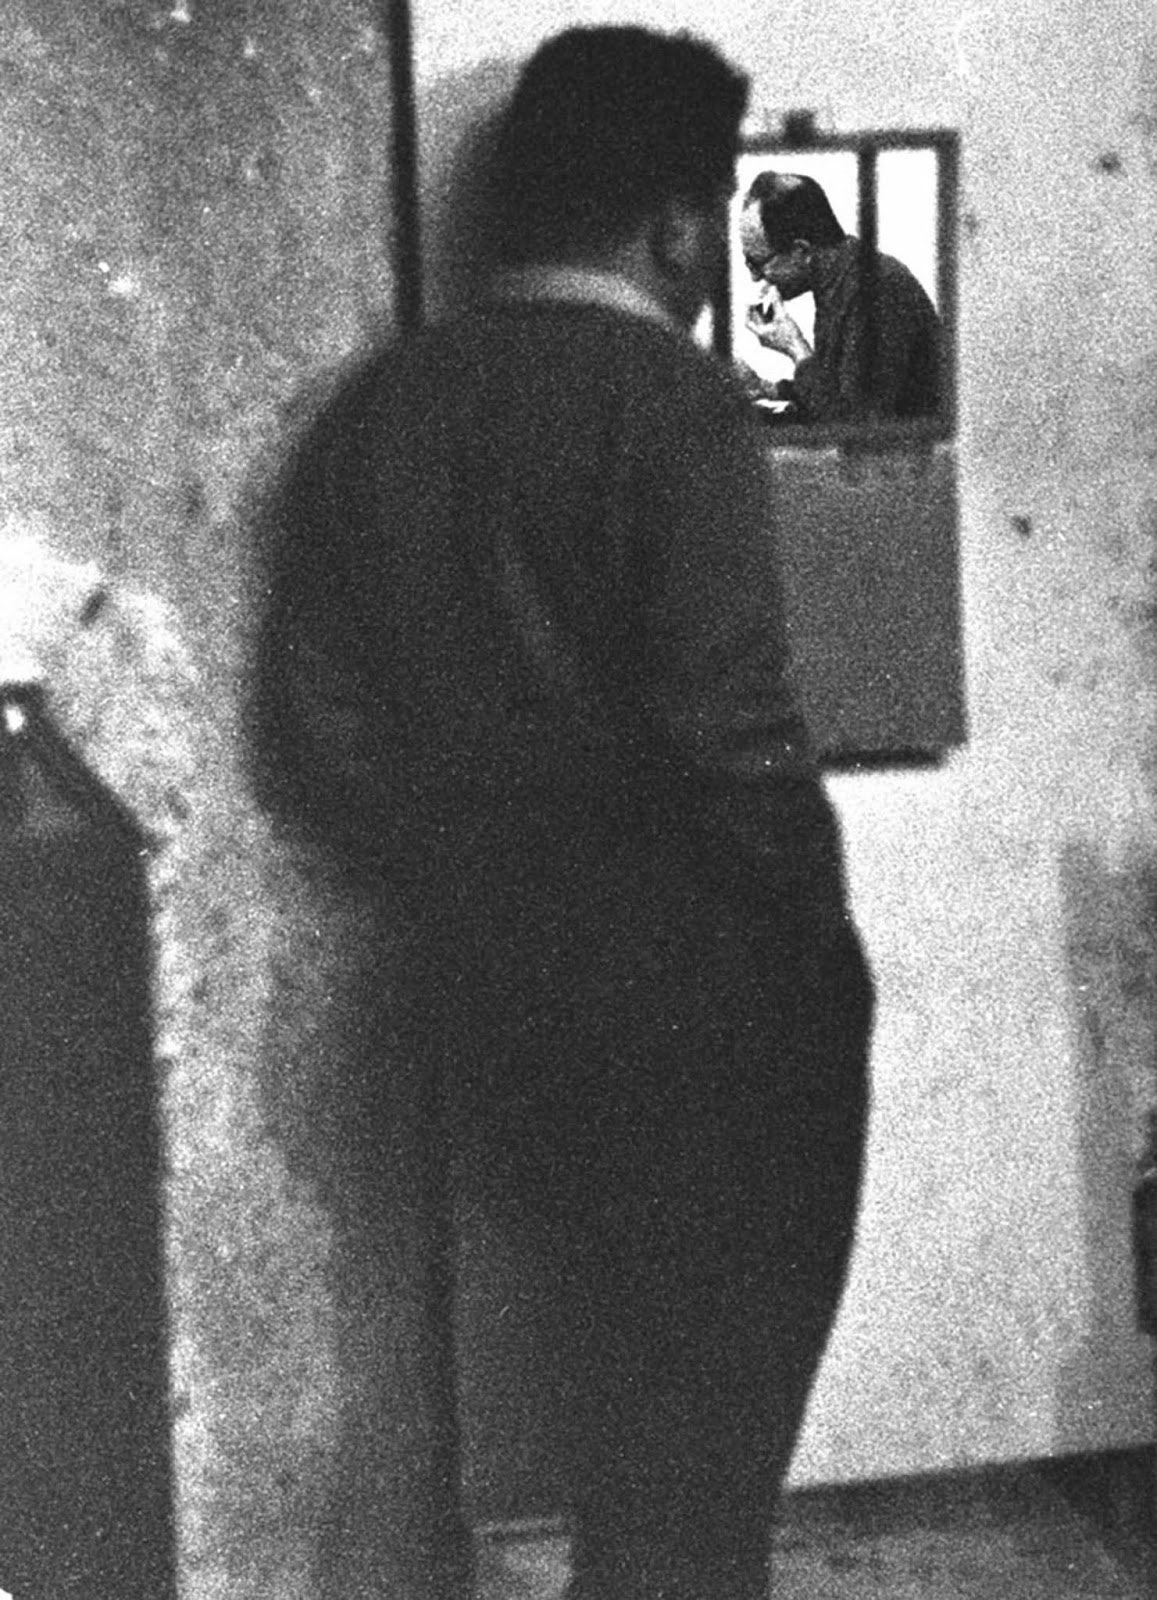 Eichmann ate alone, but watched from outside. Most of the guards did not speak any German, and all were forbidden to talk with him.